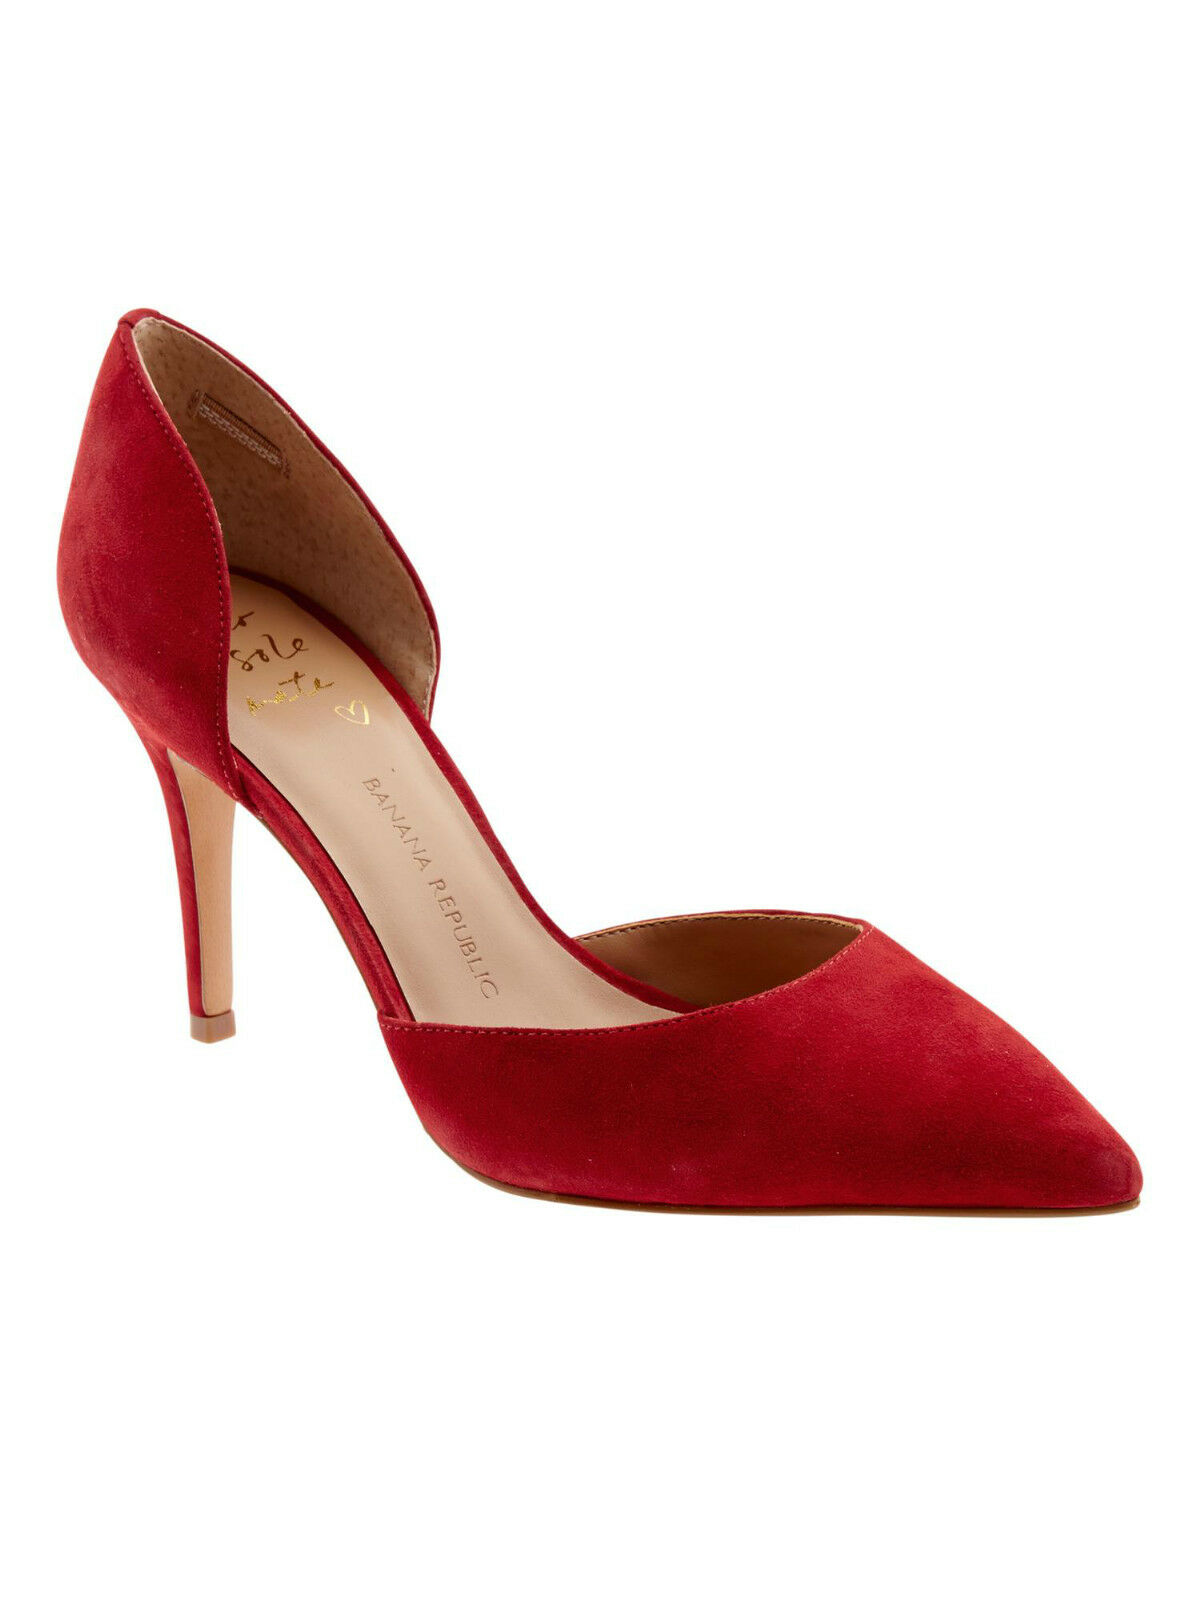 Banana Republic Alicia D'Orsay Pump, ROT SIZE 5.5 M     #183427